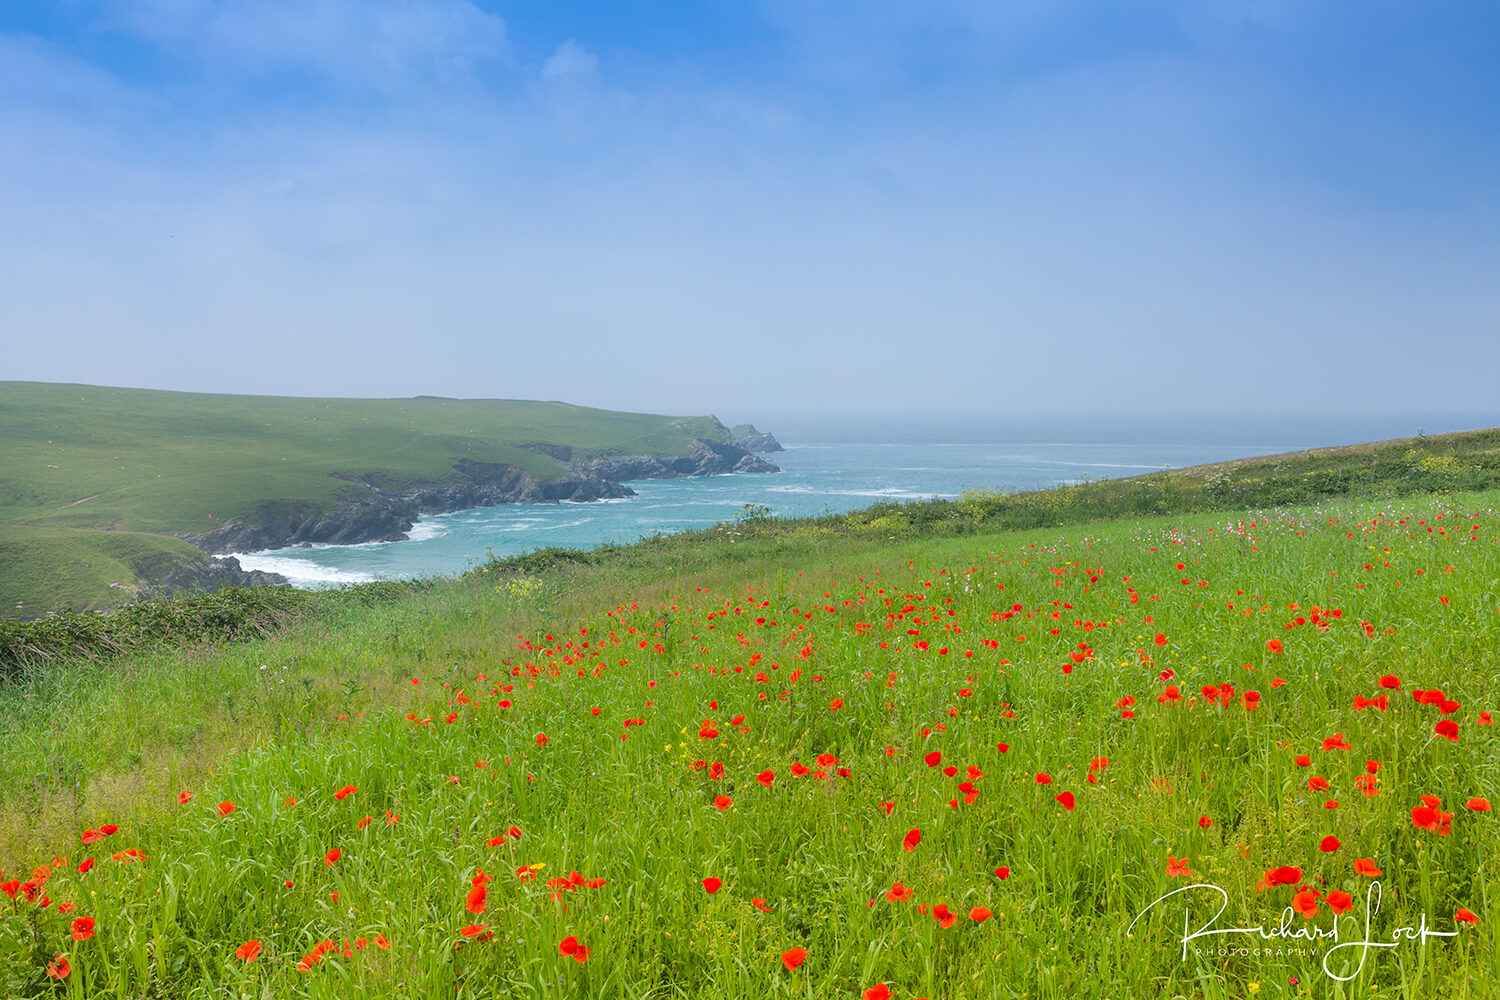 Poppies on the coast curtesy of Richard Lock Getty Images